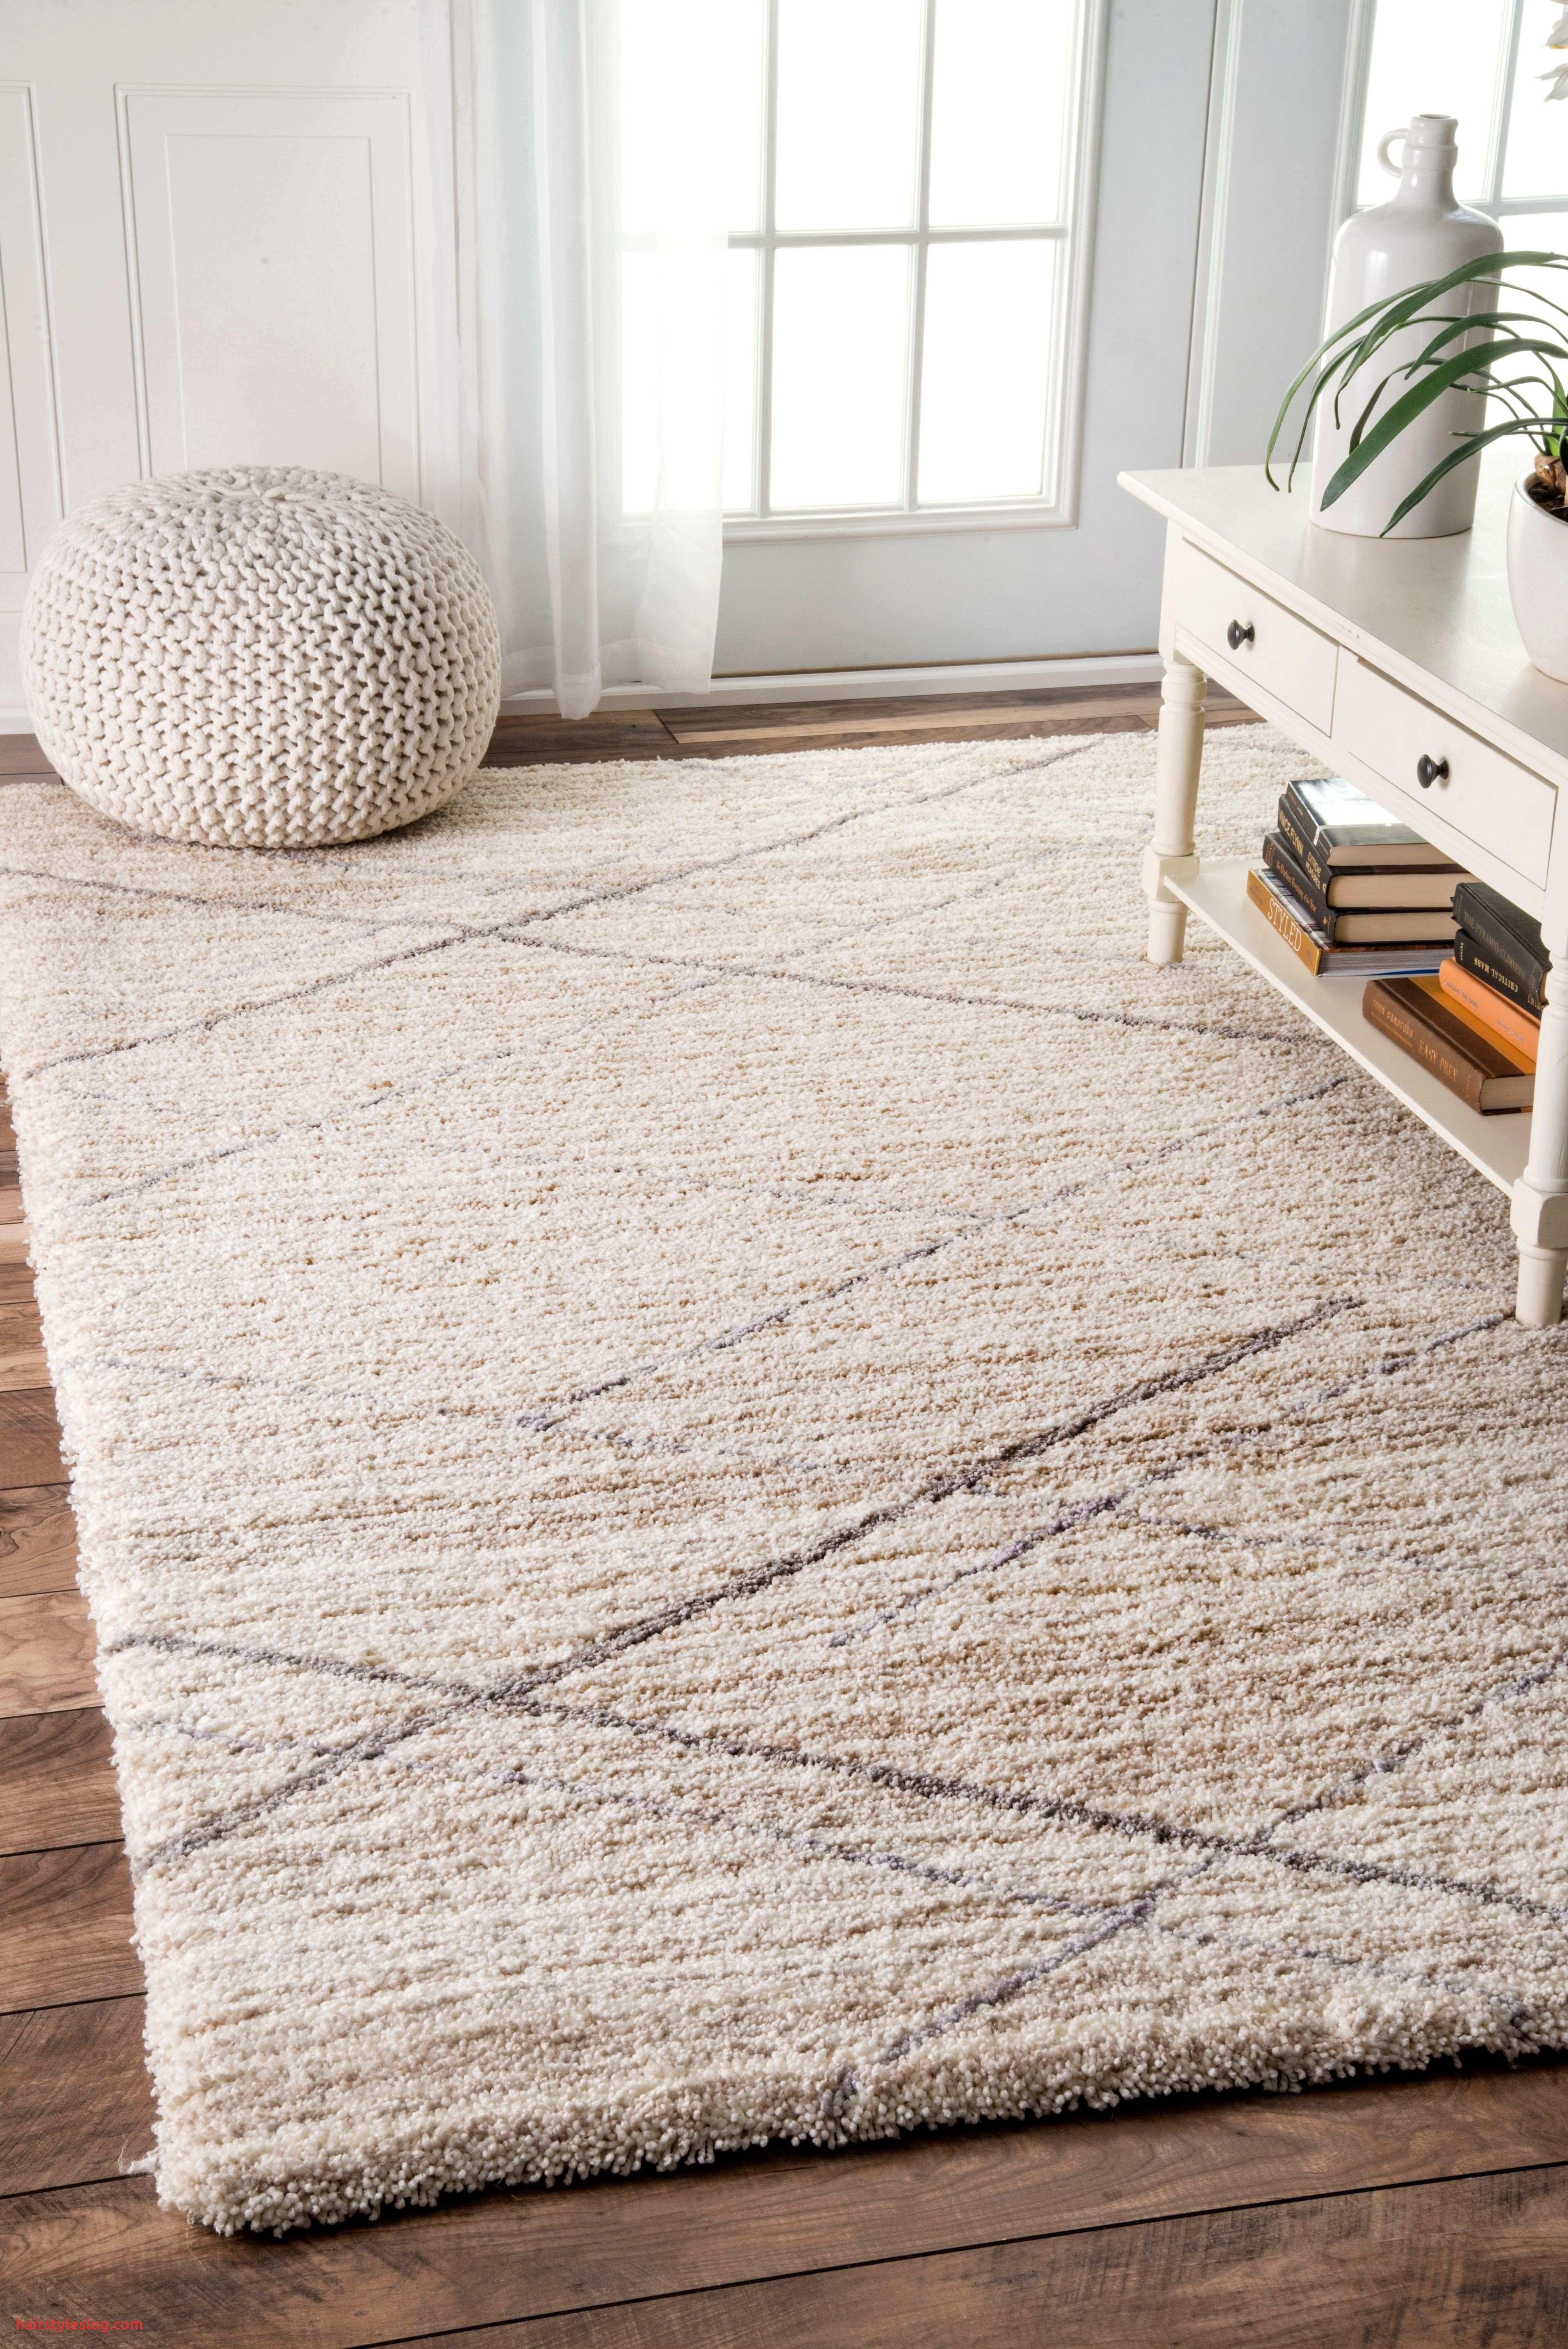 30 New 12x8 Area Rug Which Popular This Year Easy How Big Should An Area Rug Be For A Dining Room Plans N Rugs In Living Room Area Room Rugs